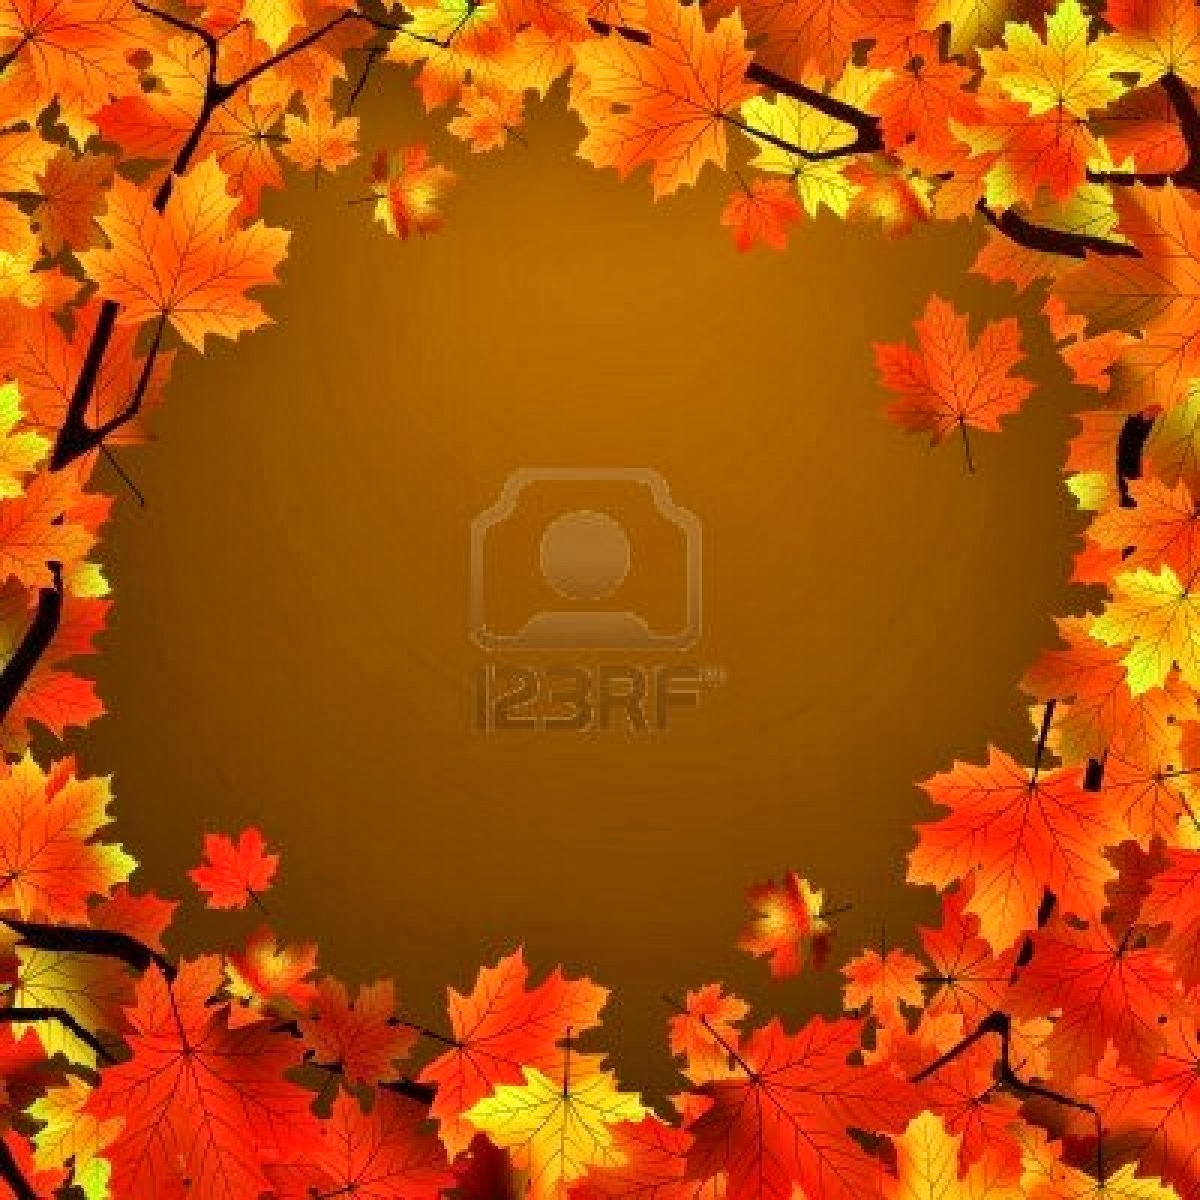 Thanksgiving Wallpapers Download for Free